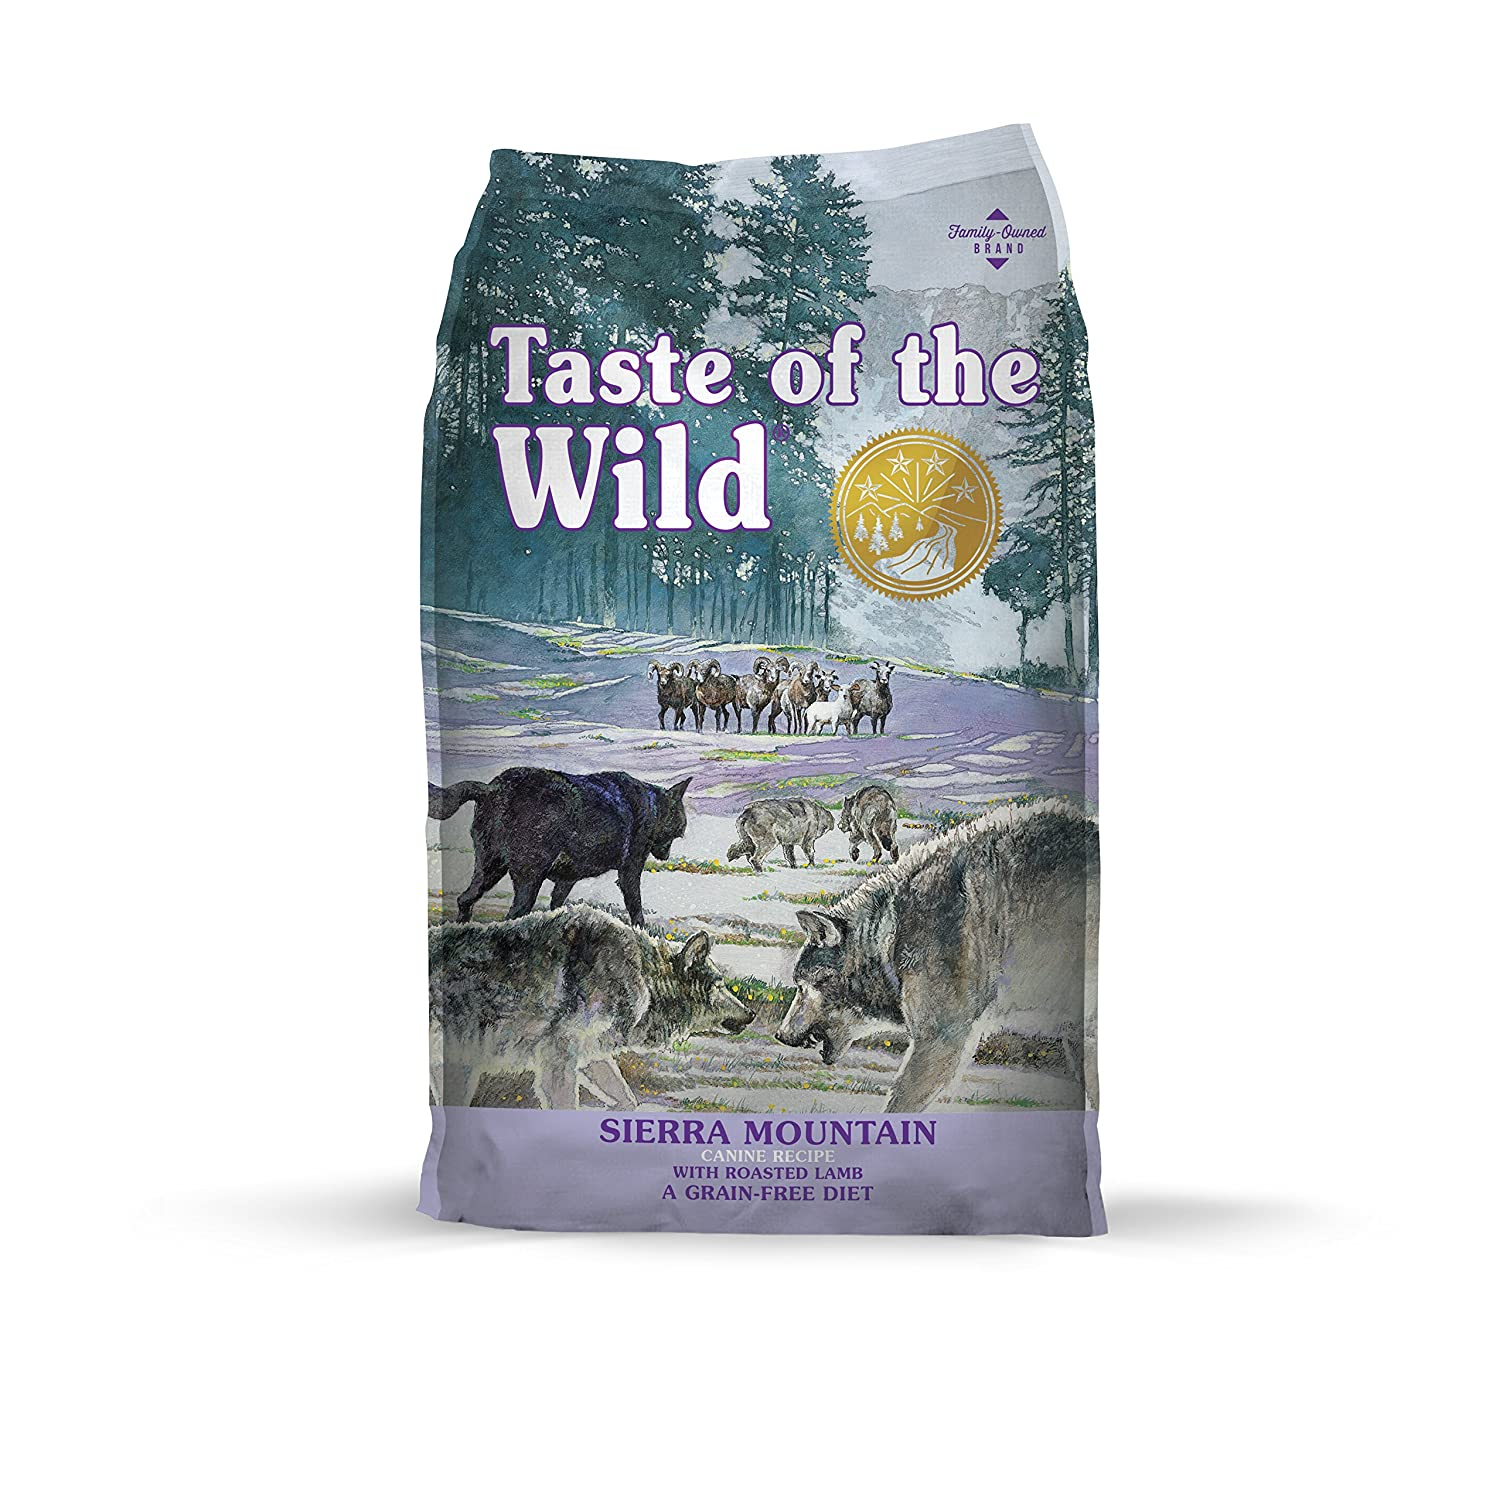 3.Taste of the Wild Grain-Free Sierra Mountain Premium Dry Dog Food